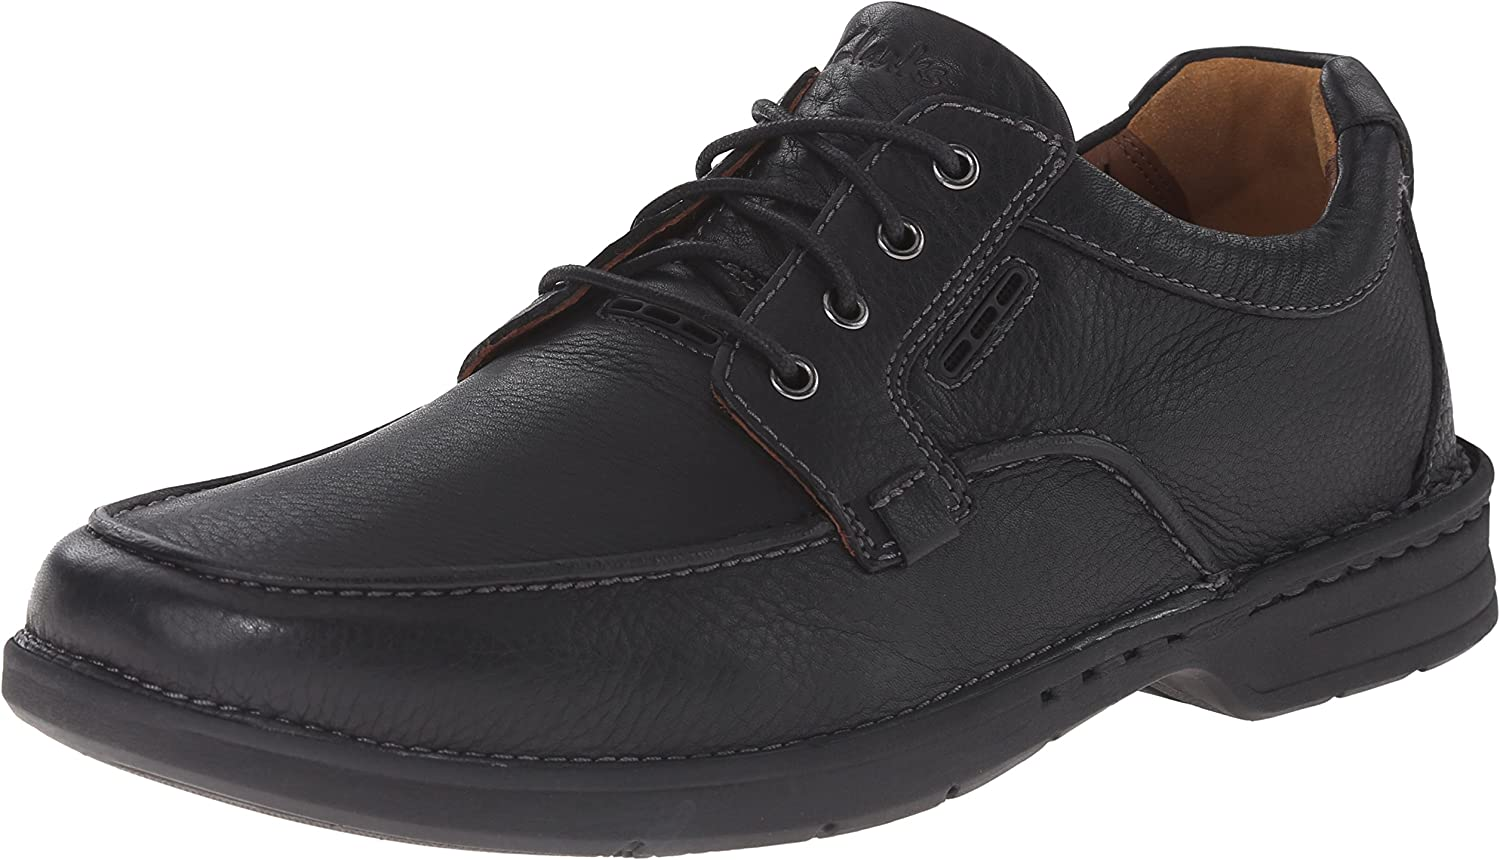 Clarks Men's Untilary Pace Oxford